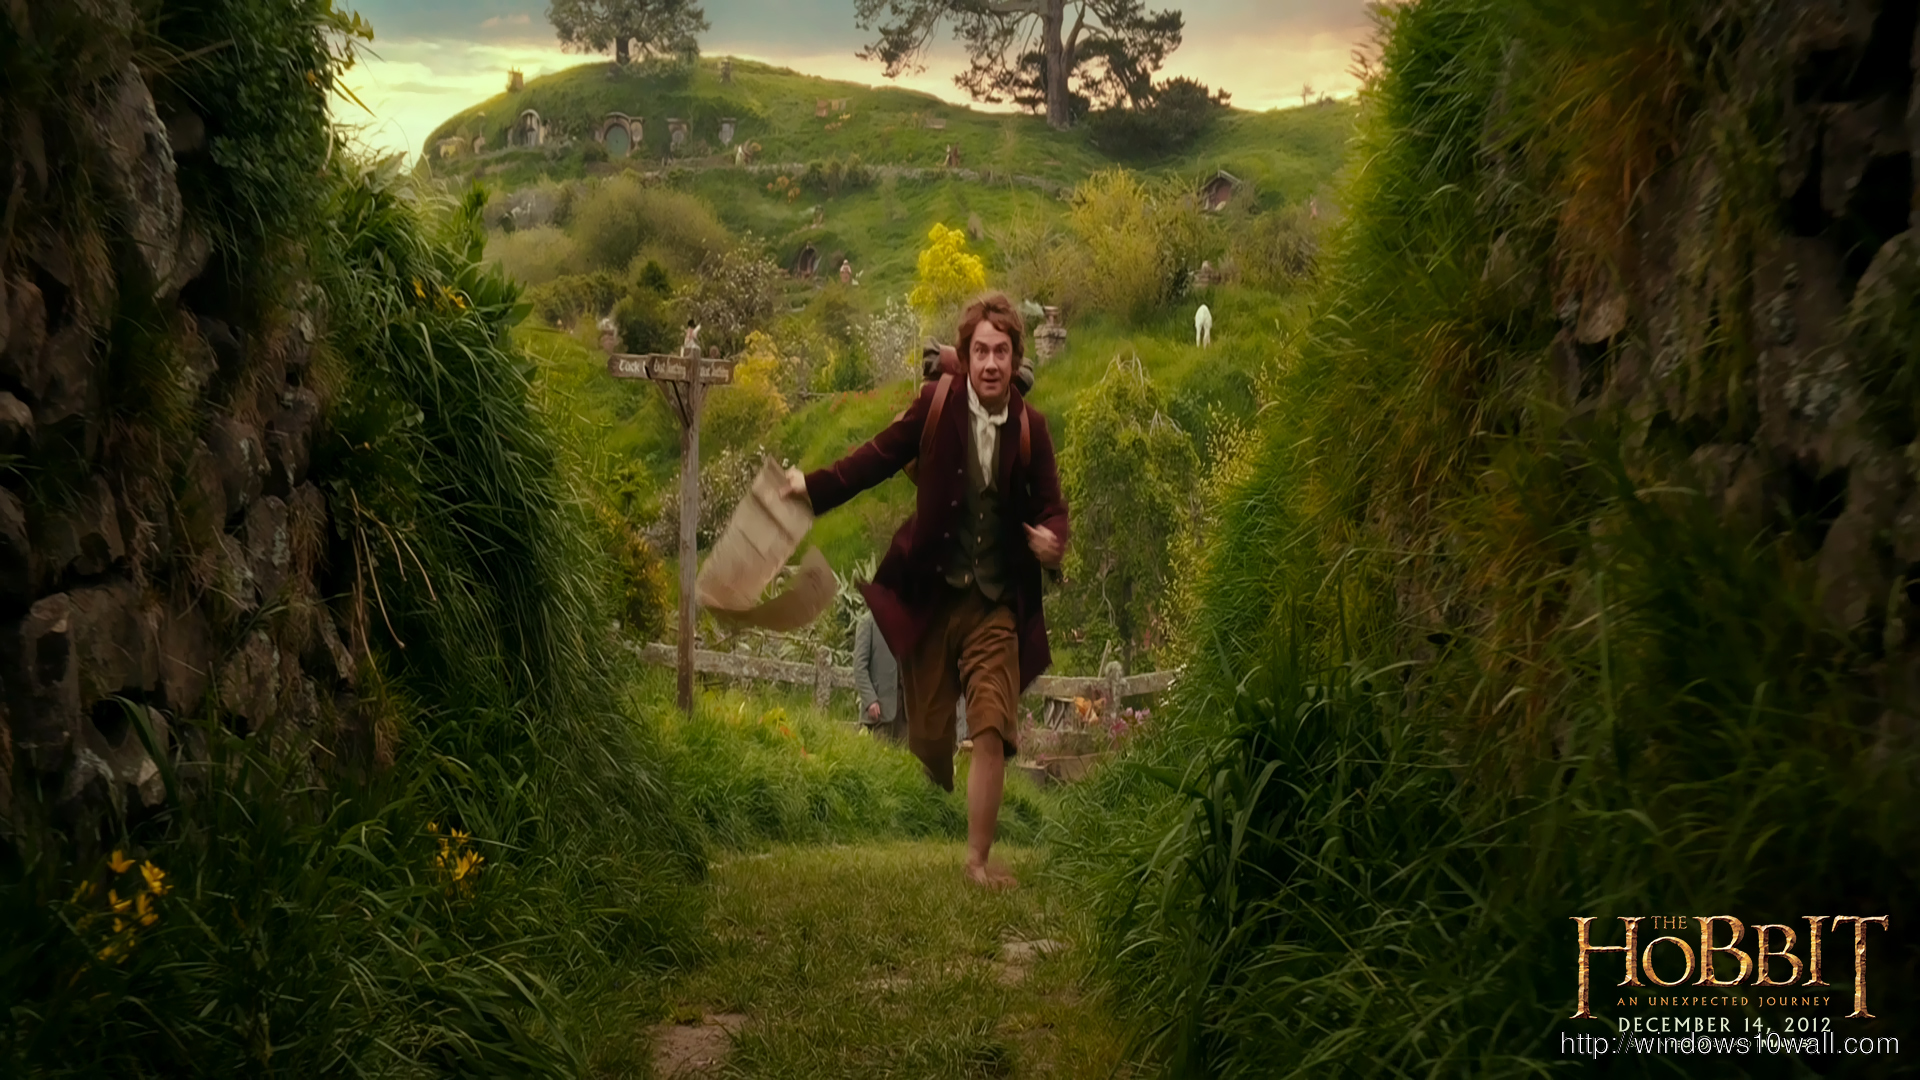 the hobbit an unexpected journey hd wallpaper - windows 10 wallpapers